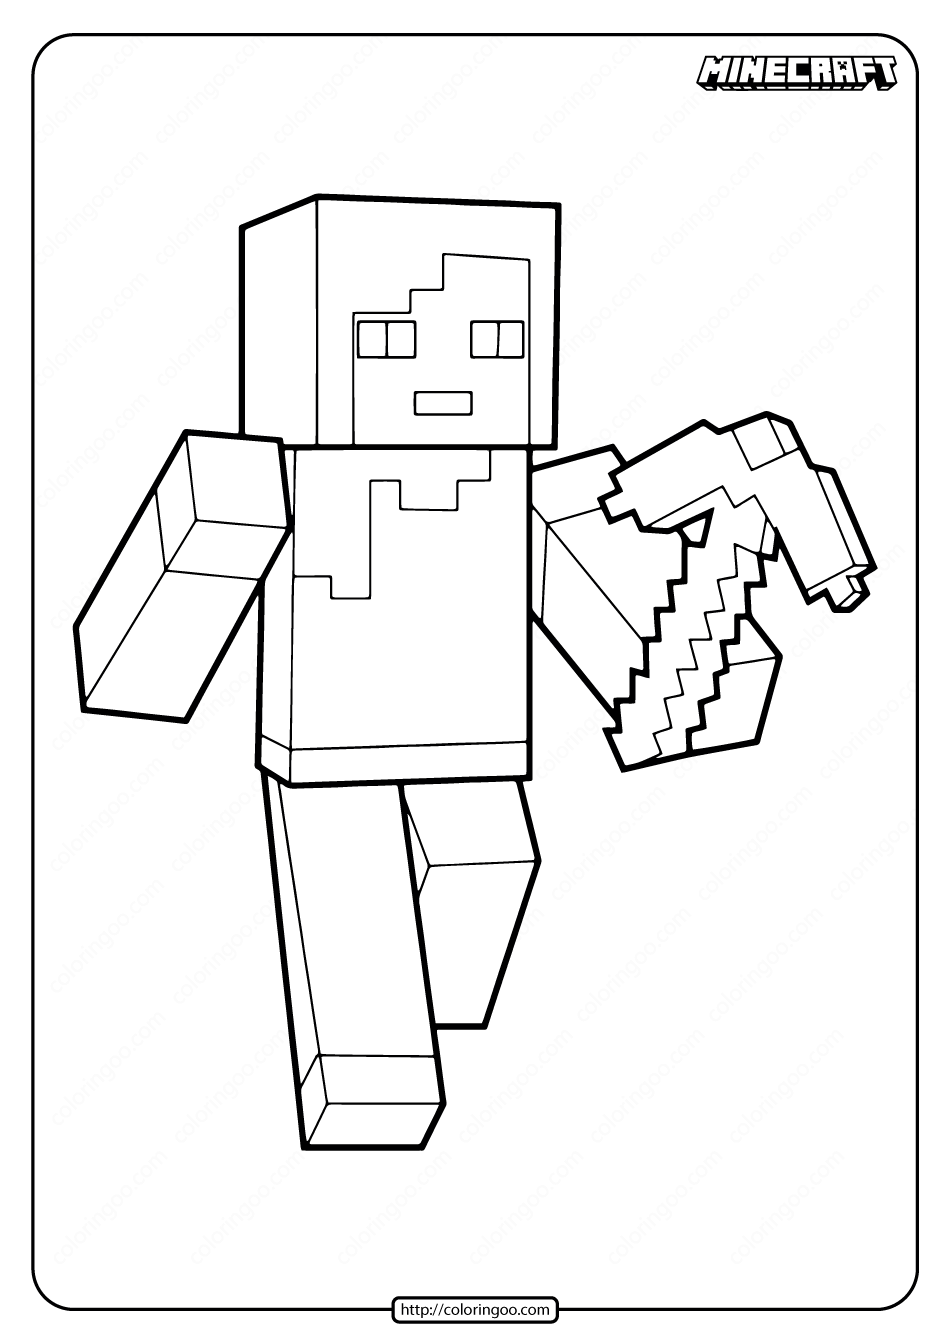 Minecraft Alex with Pickaxe Coloring Pages